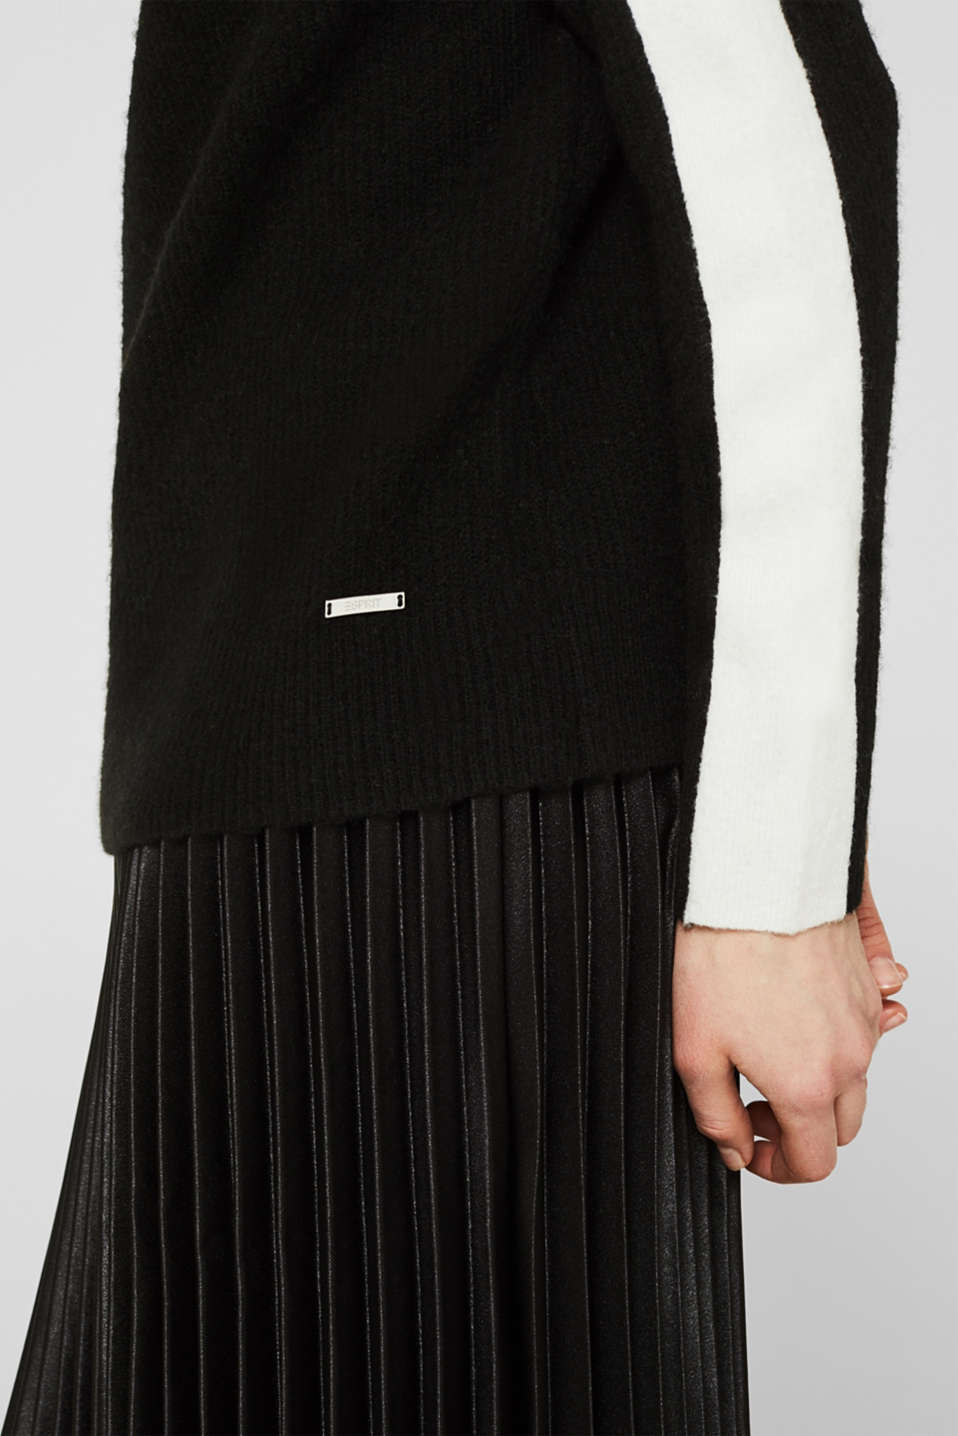 Polo neck jumper with racing stripes and wool, BLACK 2, detail image number 2